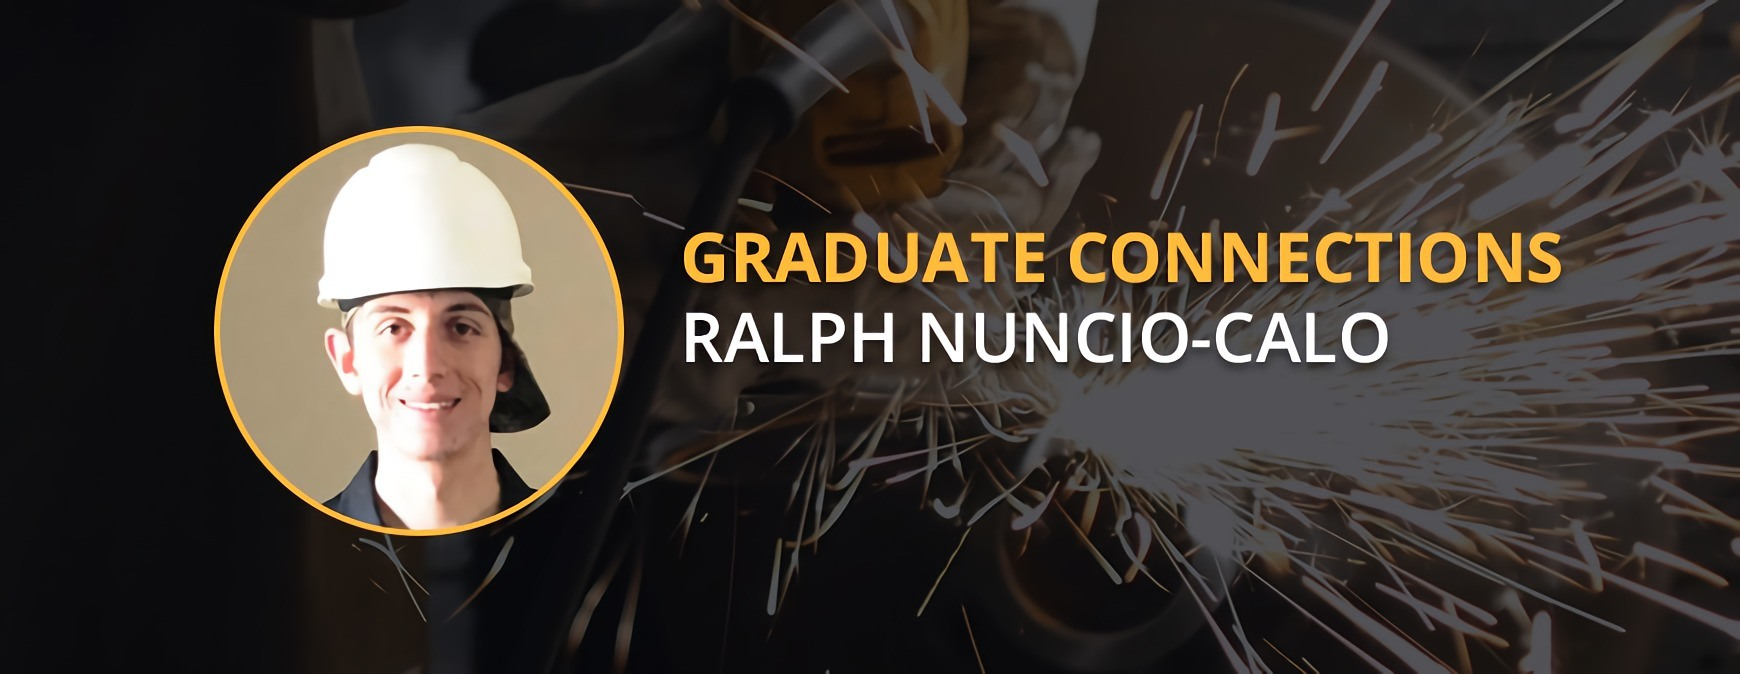 Ralph Nuncio-Calo Graduate Connection